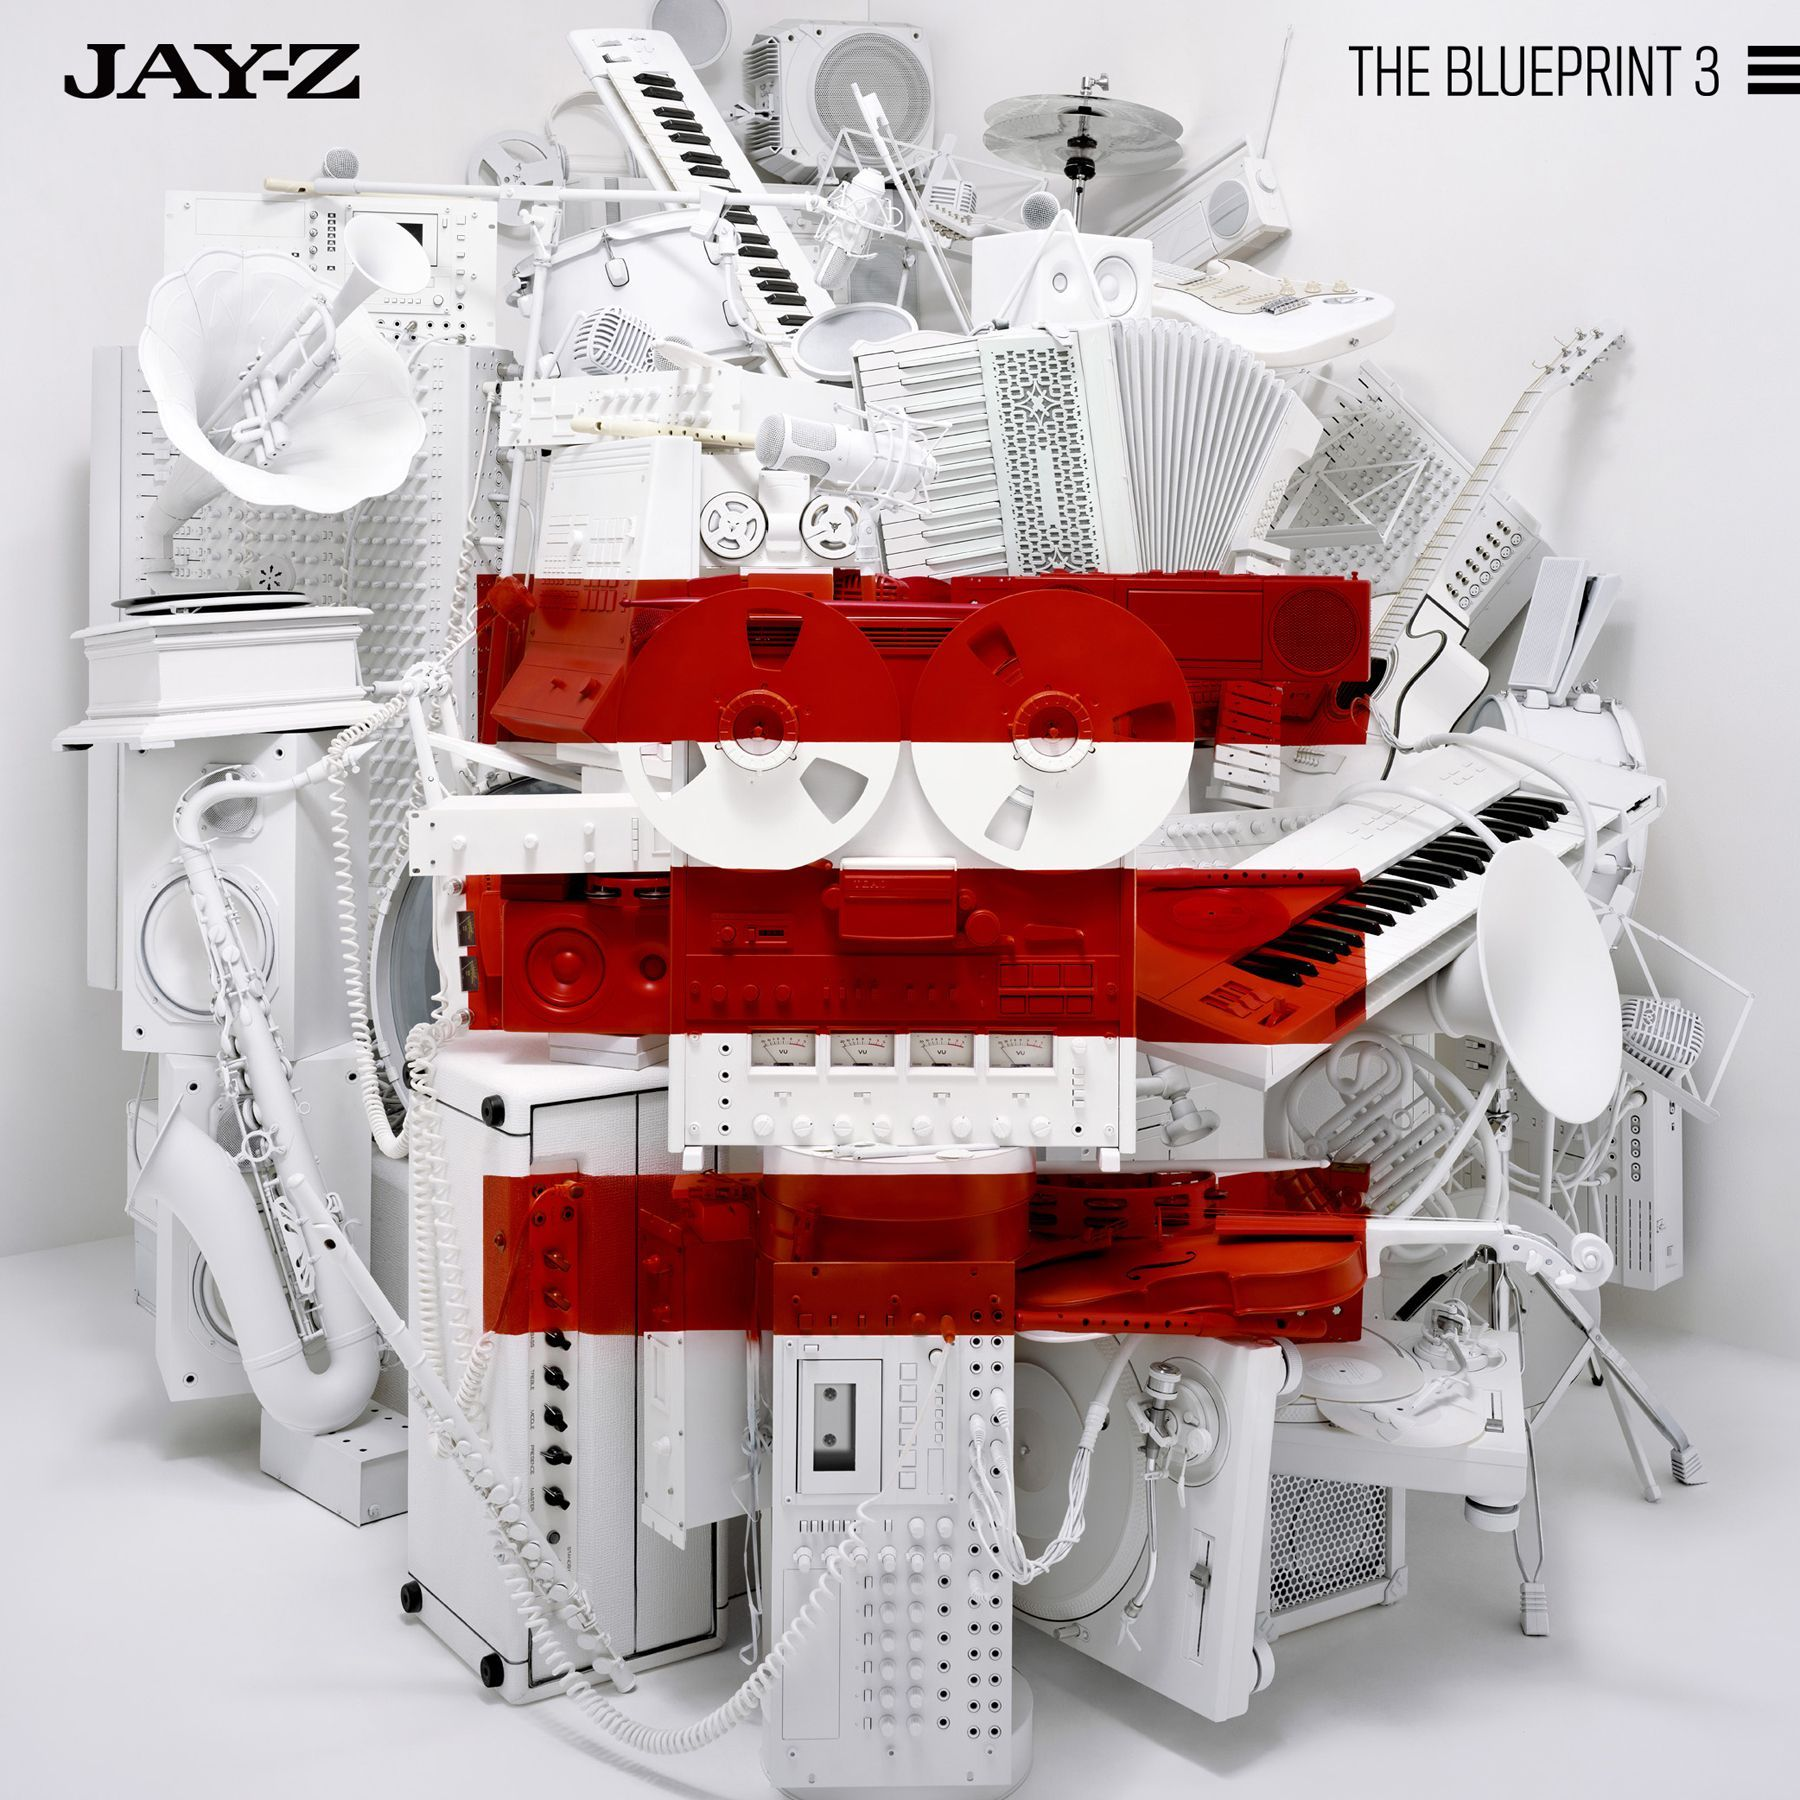 Jay-Z - The Blueprint 3 album cover